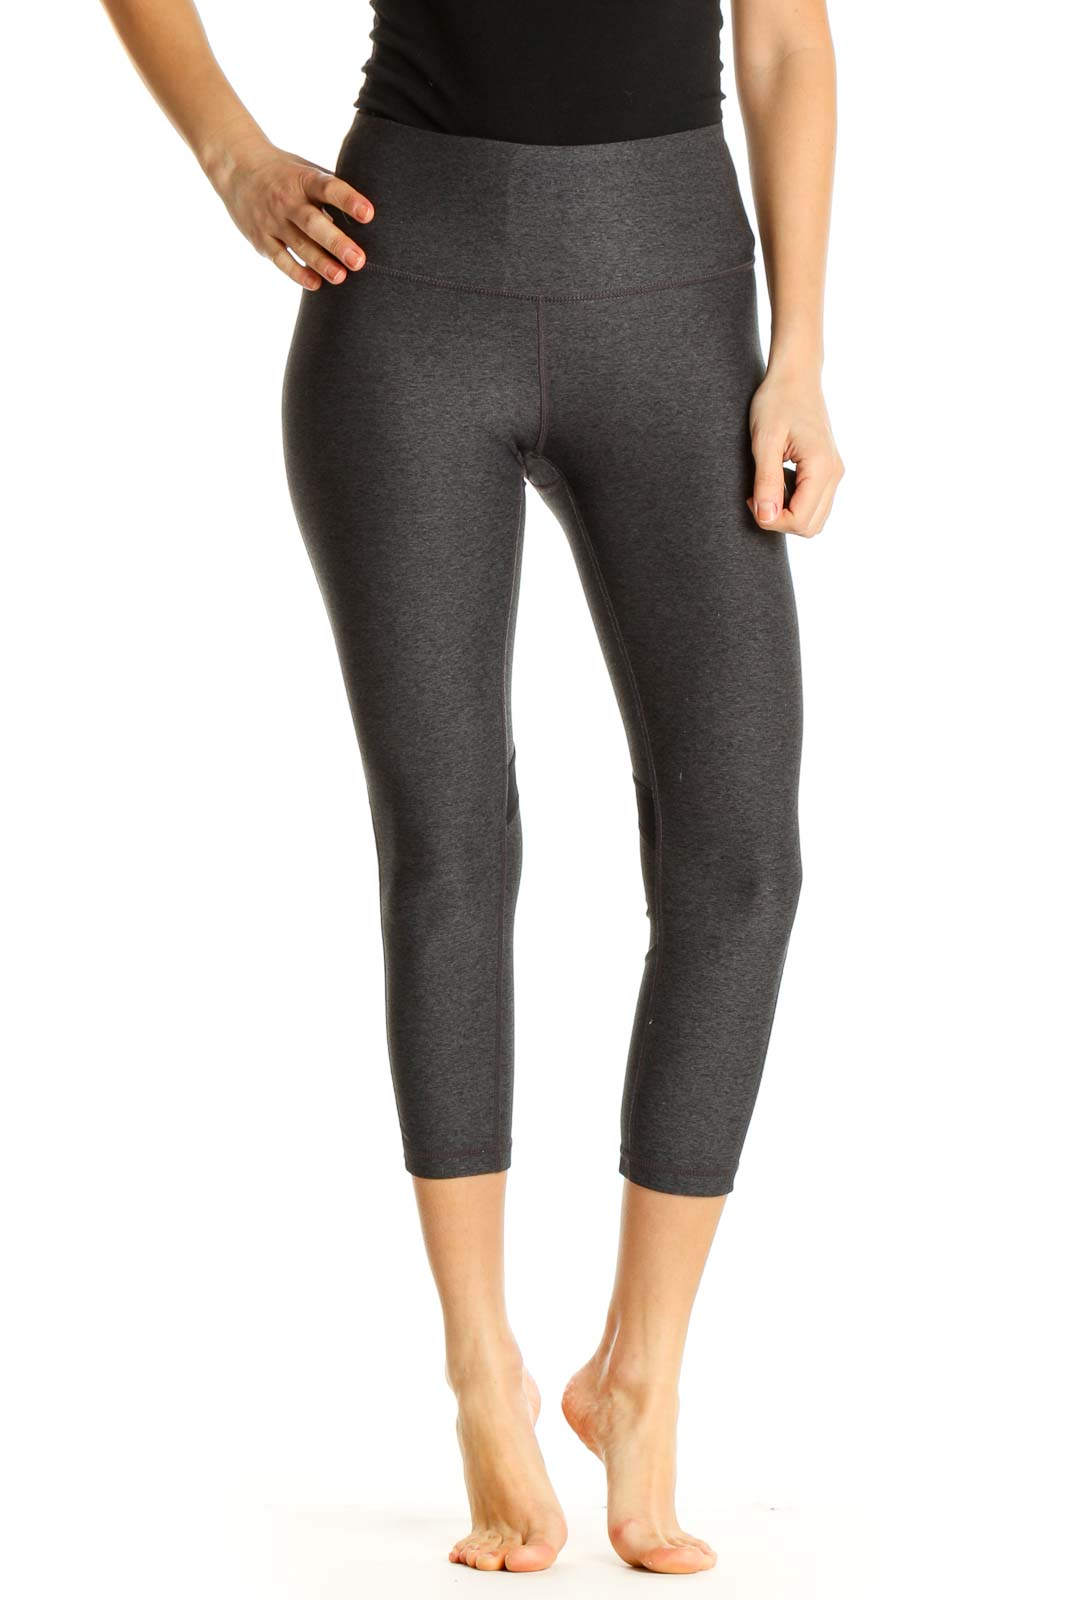 Gray Textured All Day Wear Leggings Front